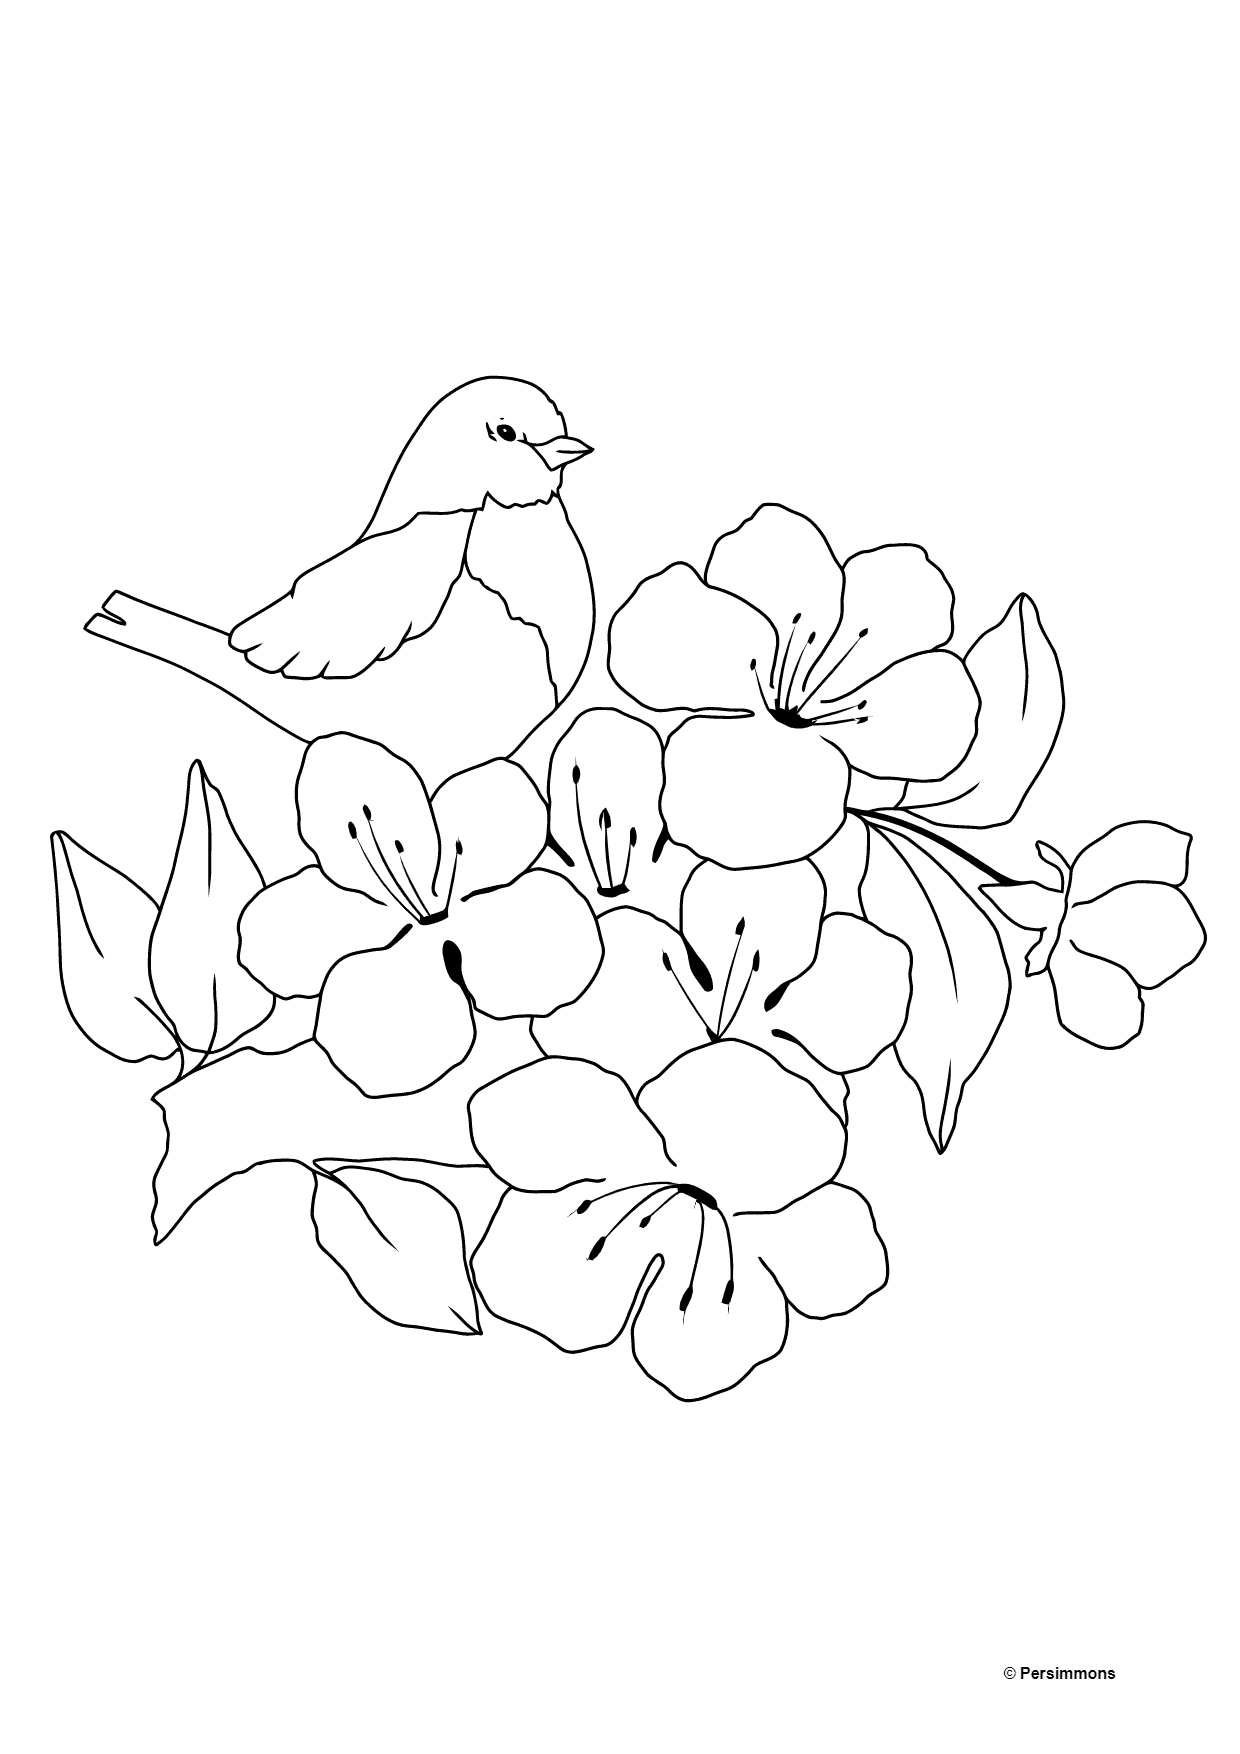 Summer Coloring Page - A Bird on a Branch with Flowers for Kids